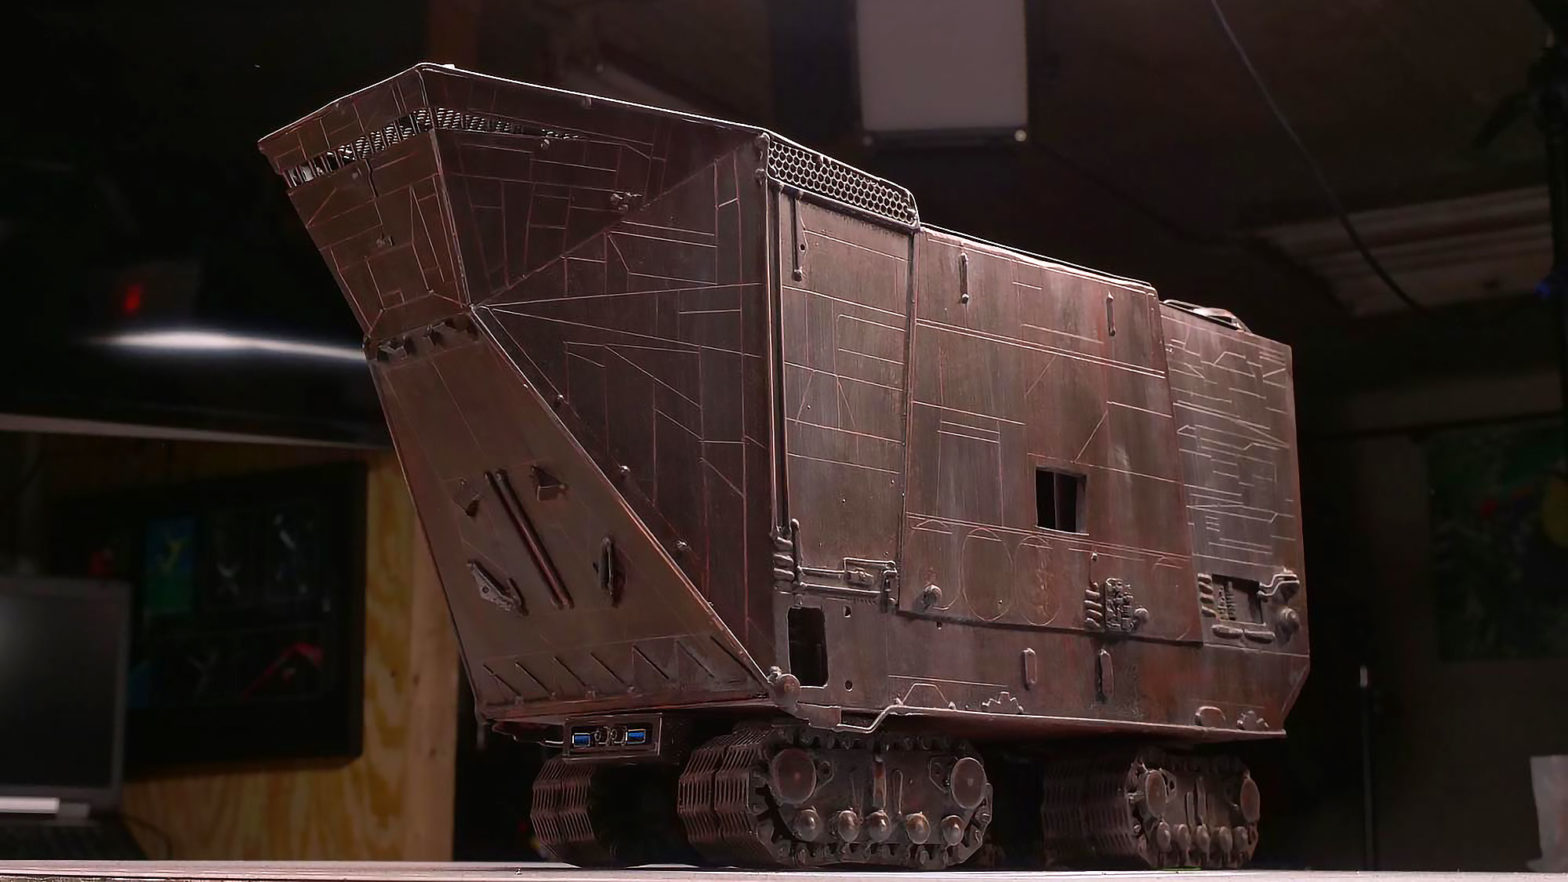 Custom Jawa Sandcrawler Gaming PC